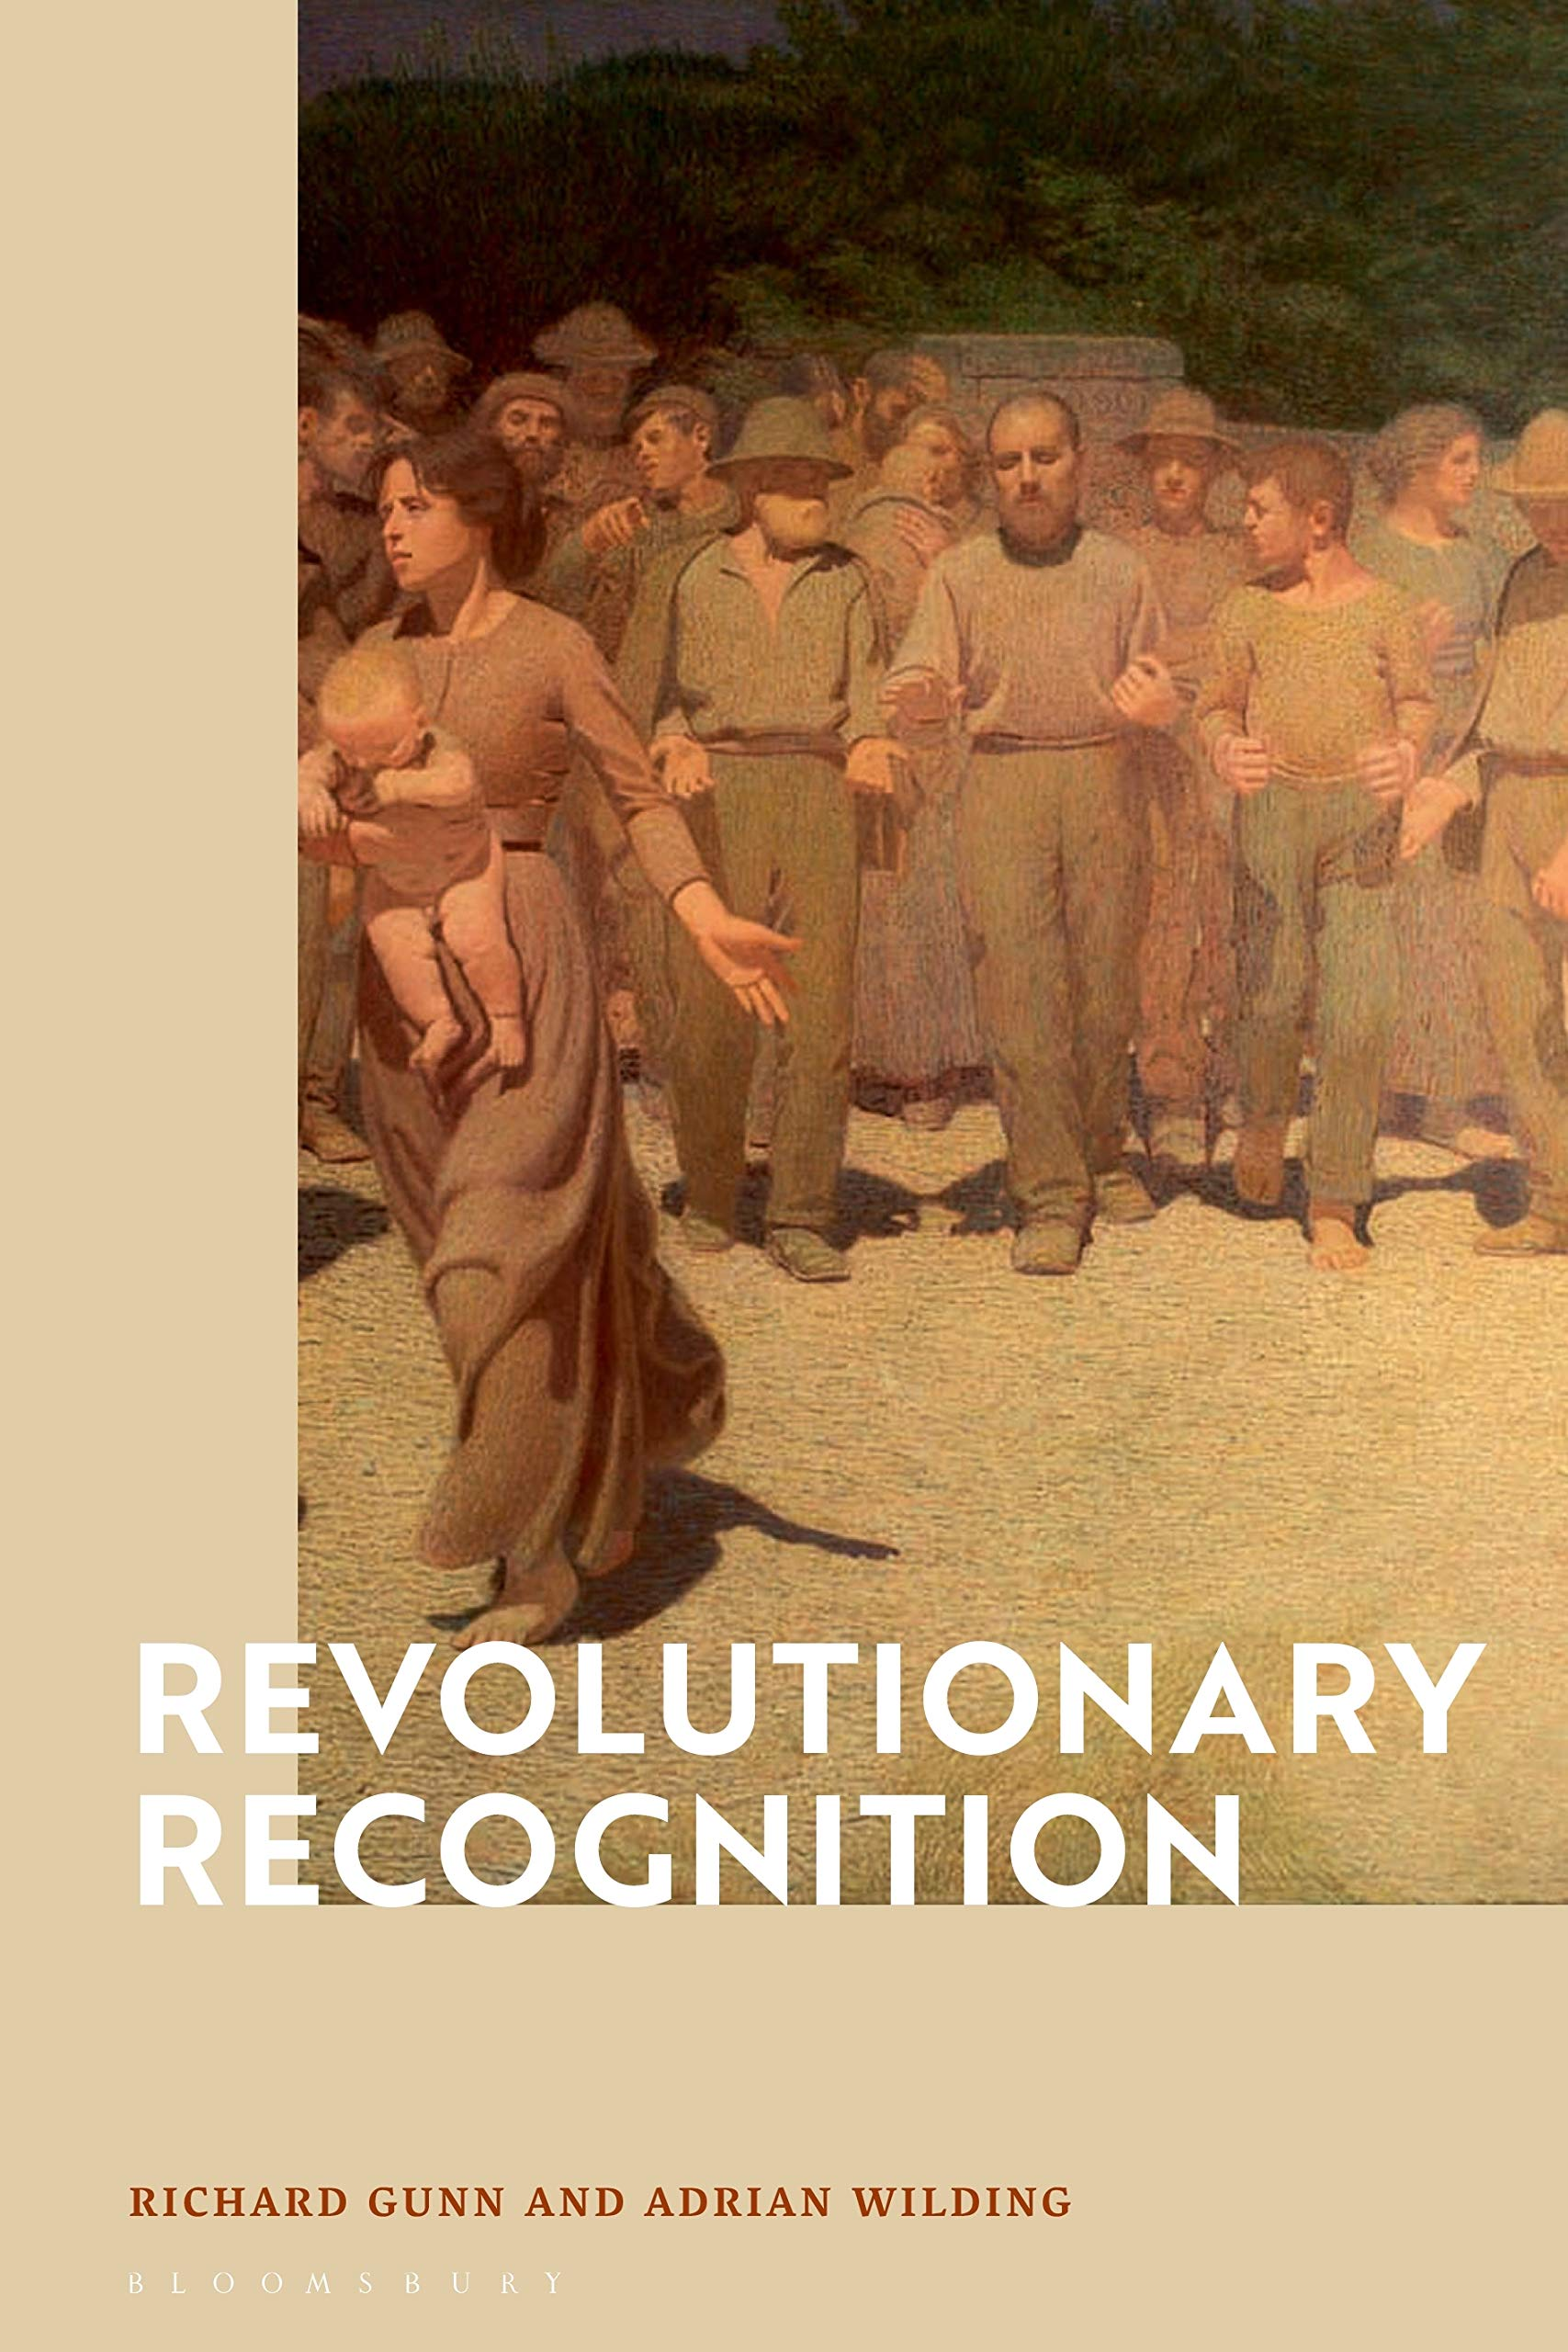 Acerca de Revolutionary Recognition, de Richard Gunn y Adrian Wilding